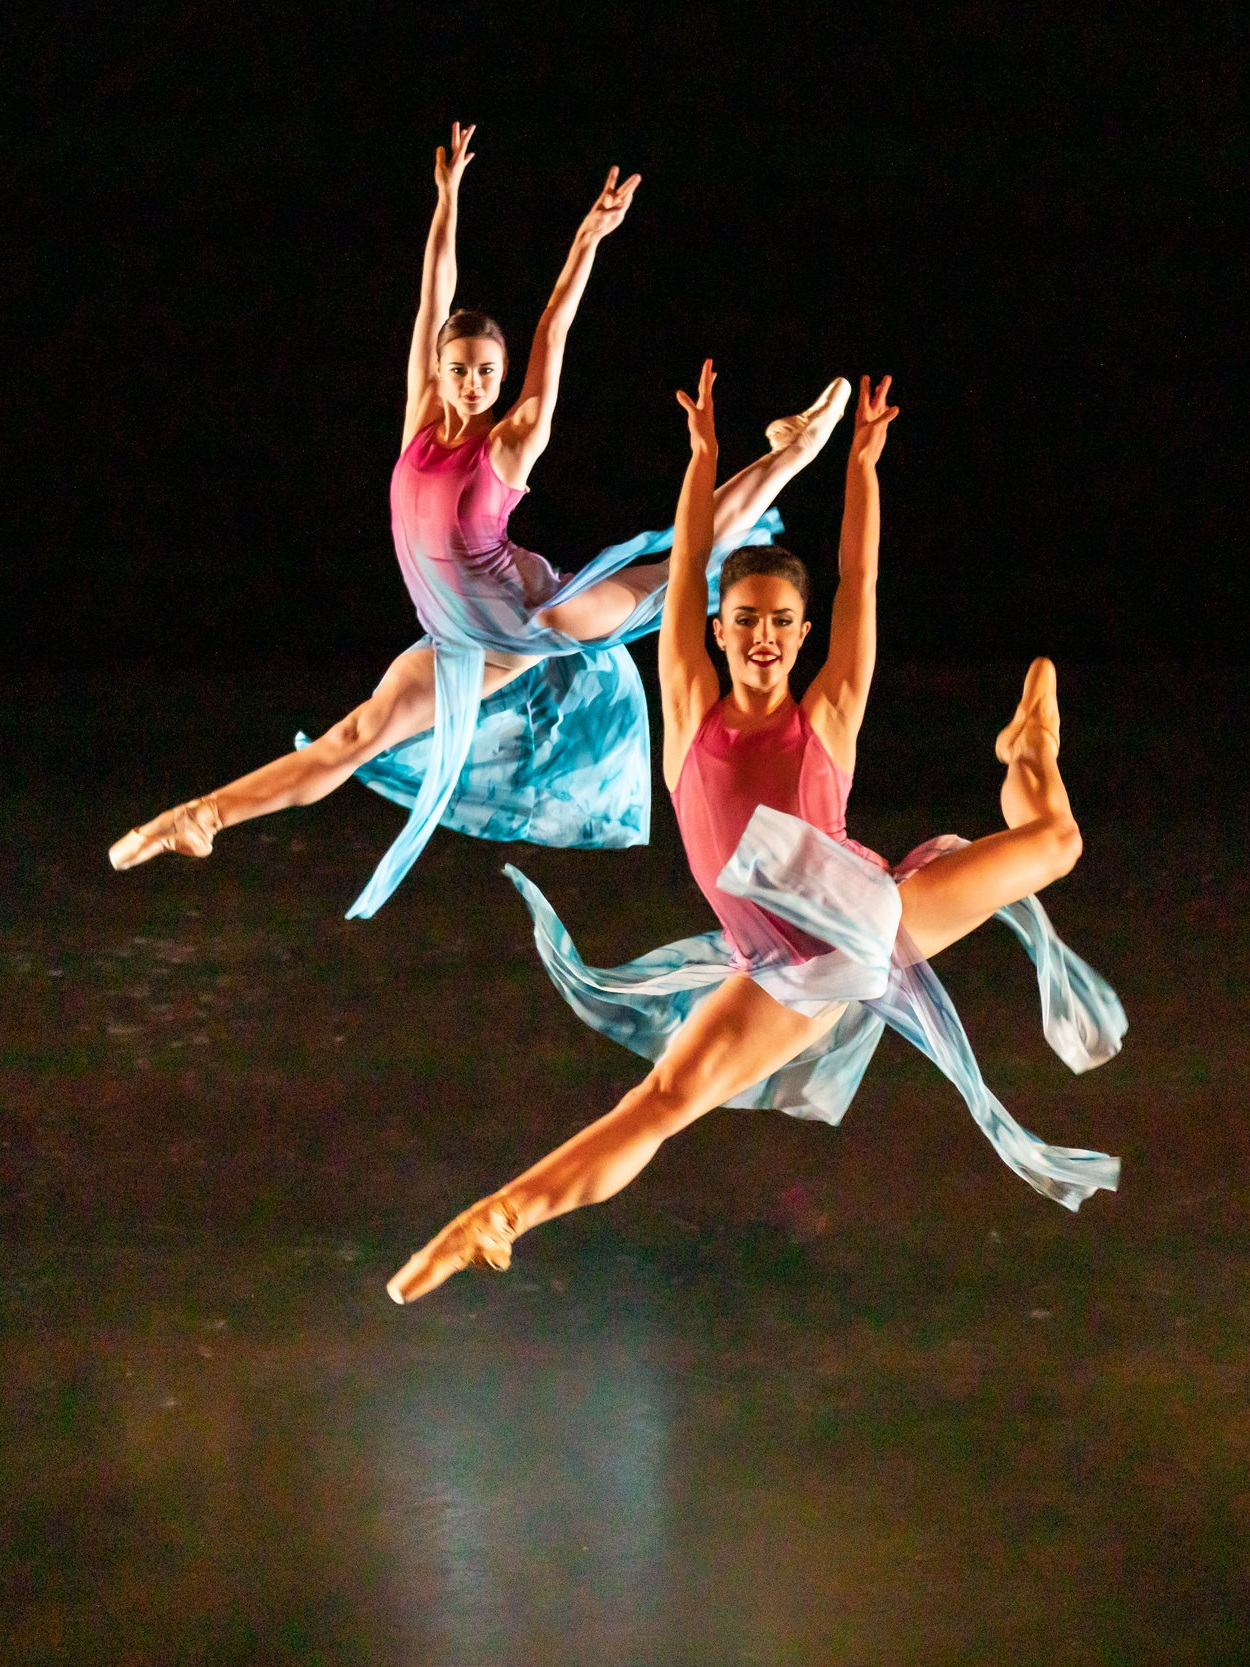 An Evening with NB2 - Witness Nashville Ballet's next generation of stars on stage. This mixed rep program boasts classical works as well as numerous contemporary works created specifically for Nashville Ballet's second company in an invigorating display of artistry.Cost: $25Date: Wednesday, July 17, 2019 from 6-8:30 p.m., including travel timeRegistration Deadline: Open until trip reaches capacityEncouraged for Session III, V, VI and VII students, but local students of all sessions are welcome to attend.